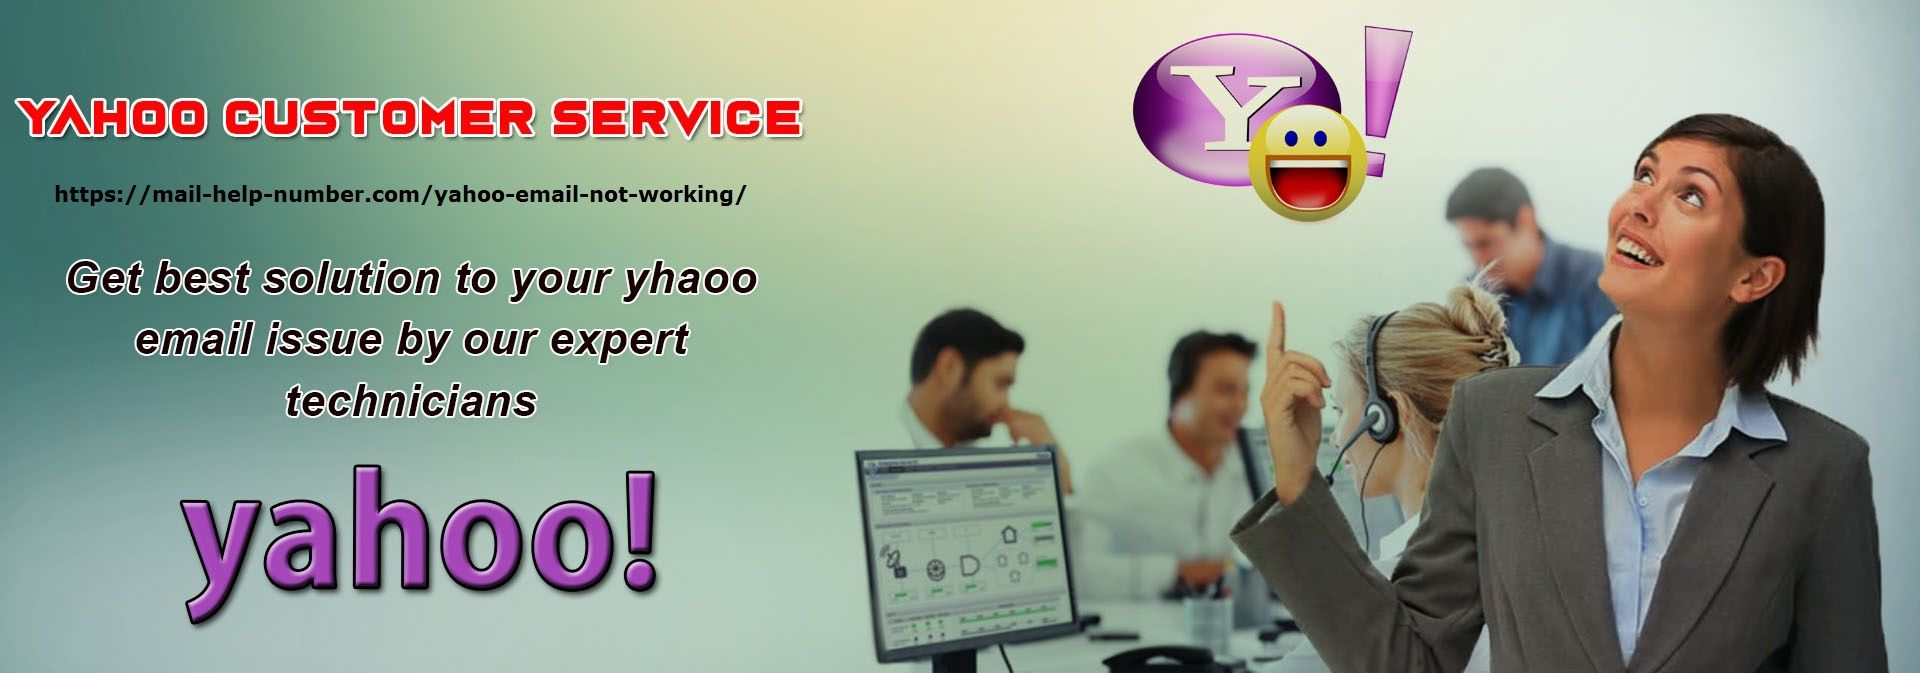 Idea by Yahoo Customer Service on yahoo email not working